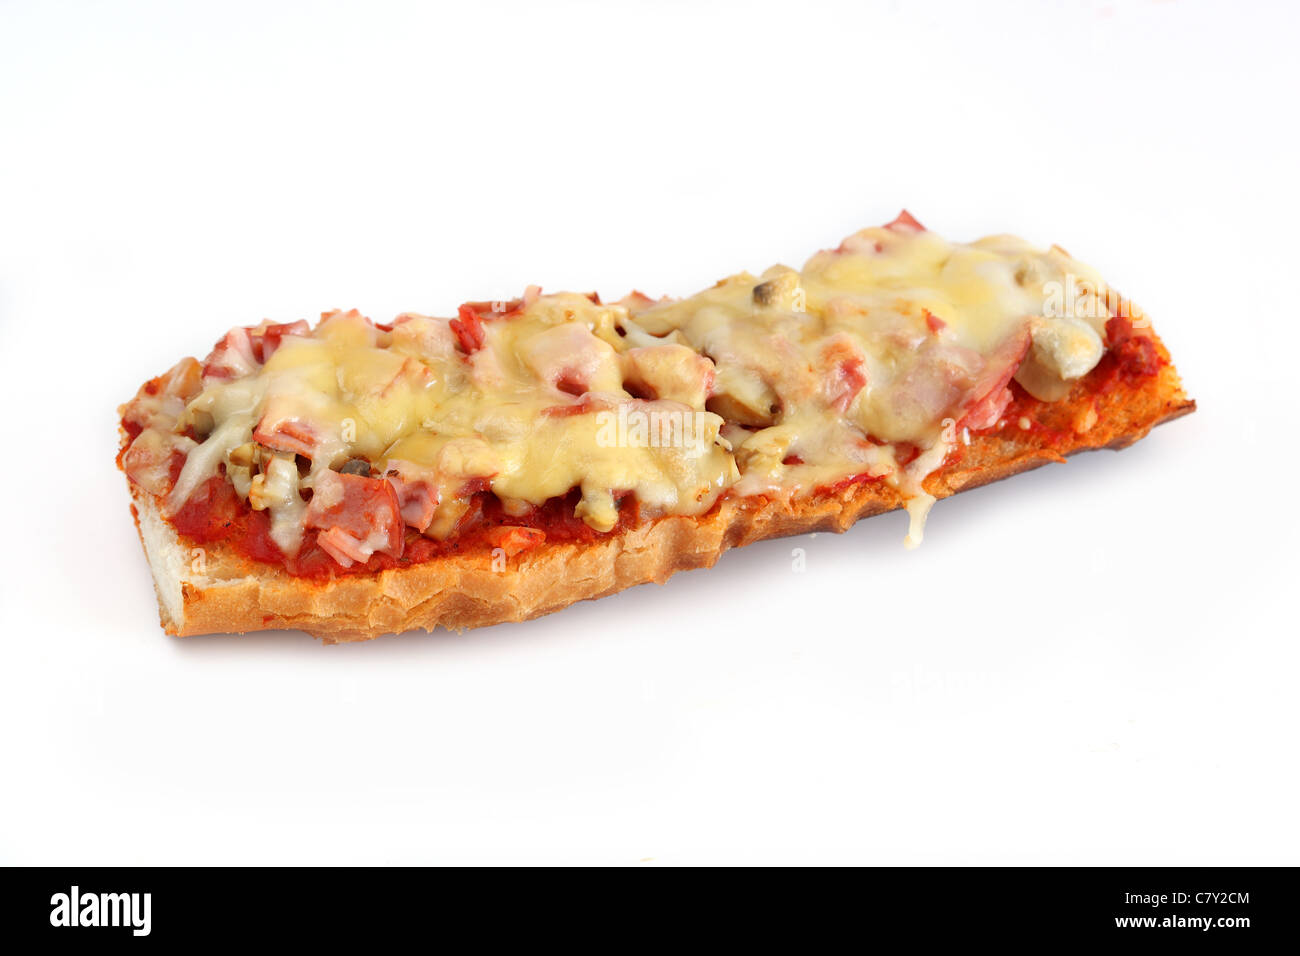 Baguette grillee jambon-tomates Grilled ham and tomato baguette - Stock Image